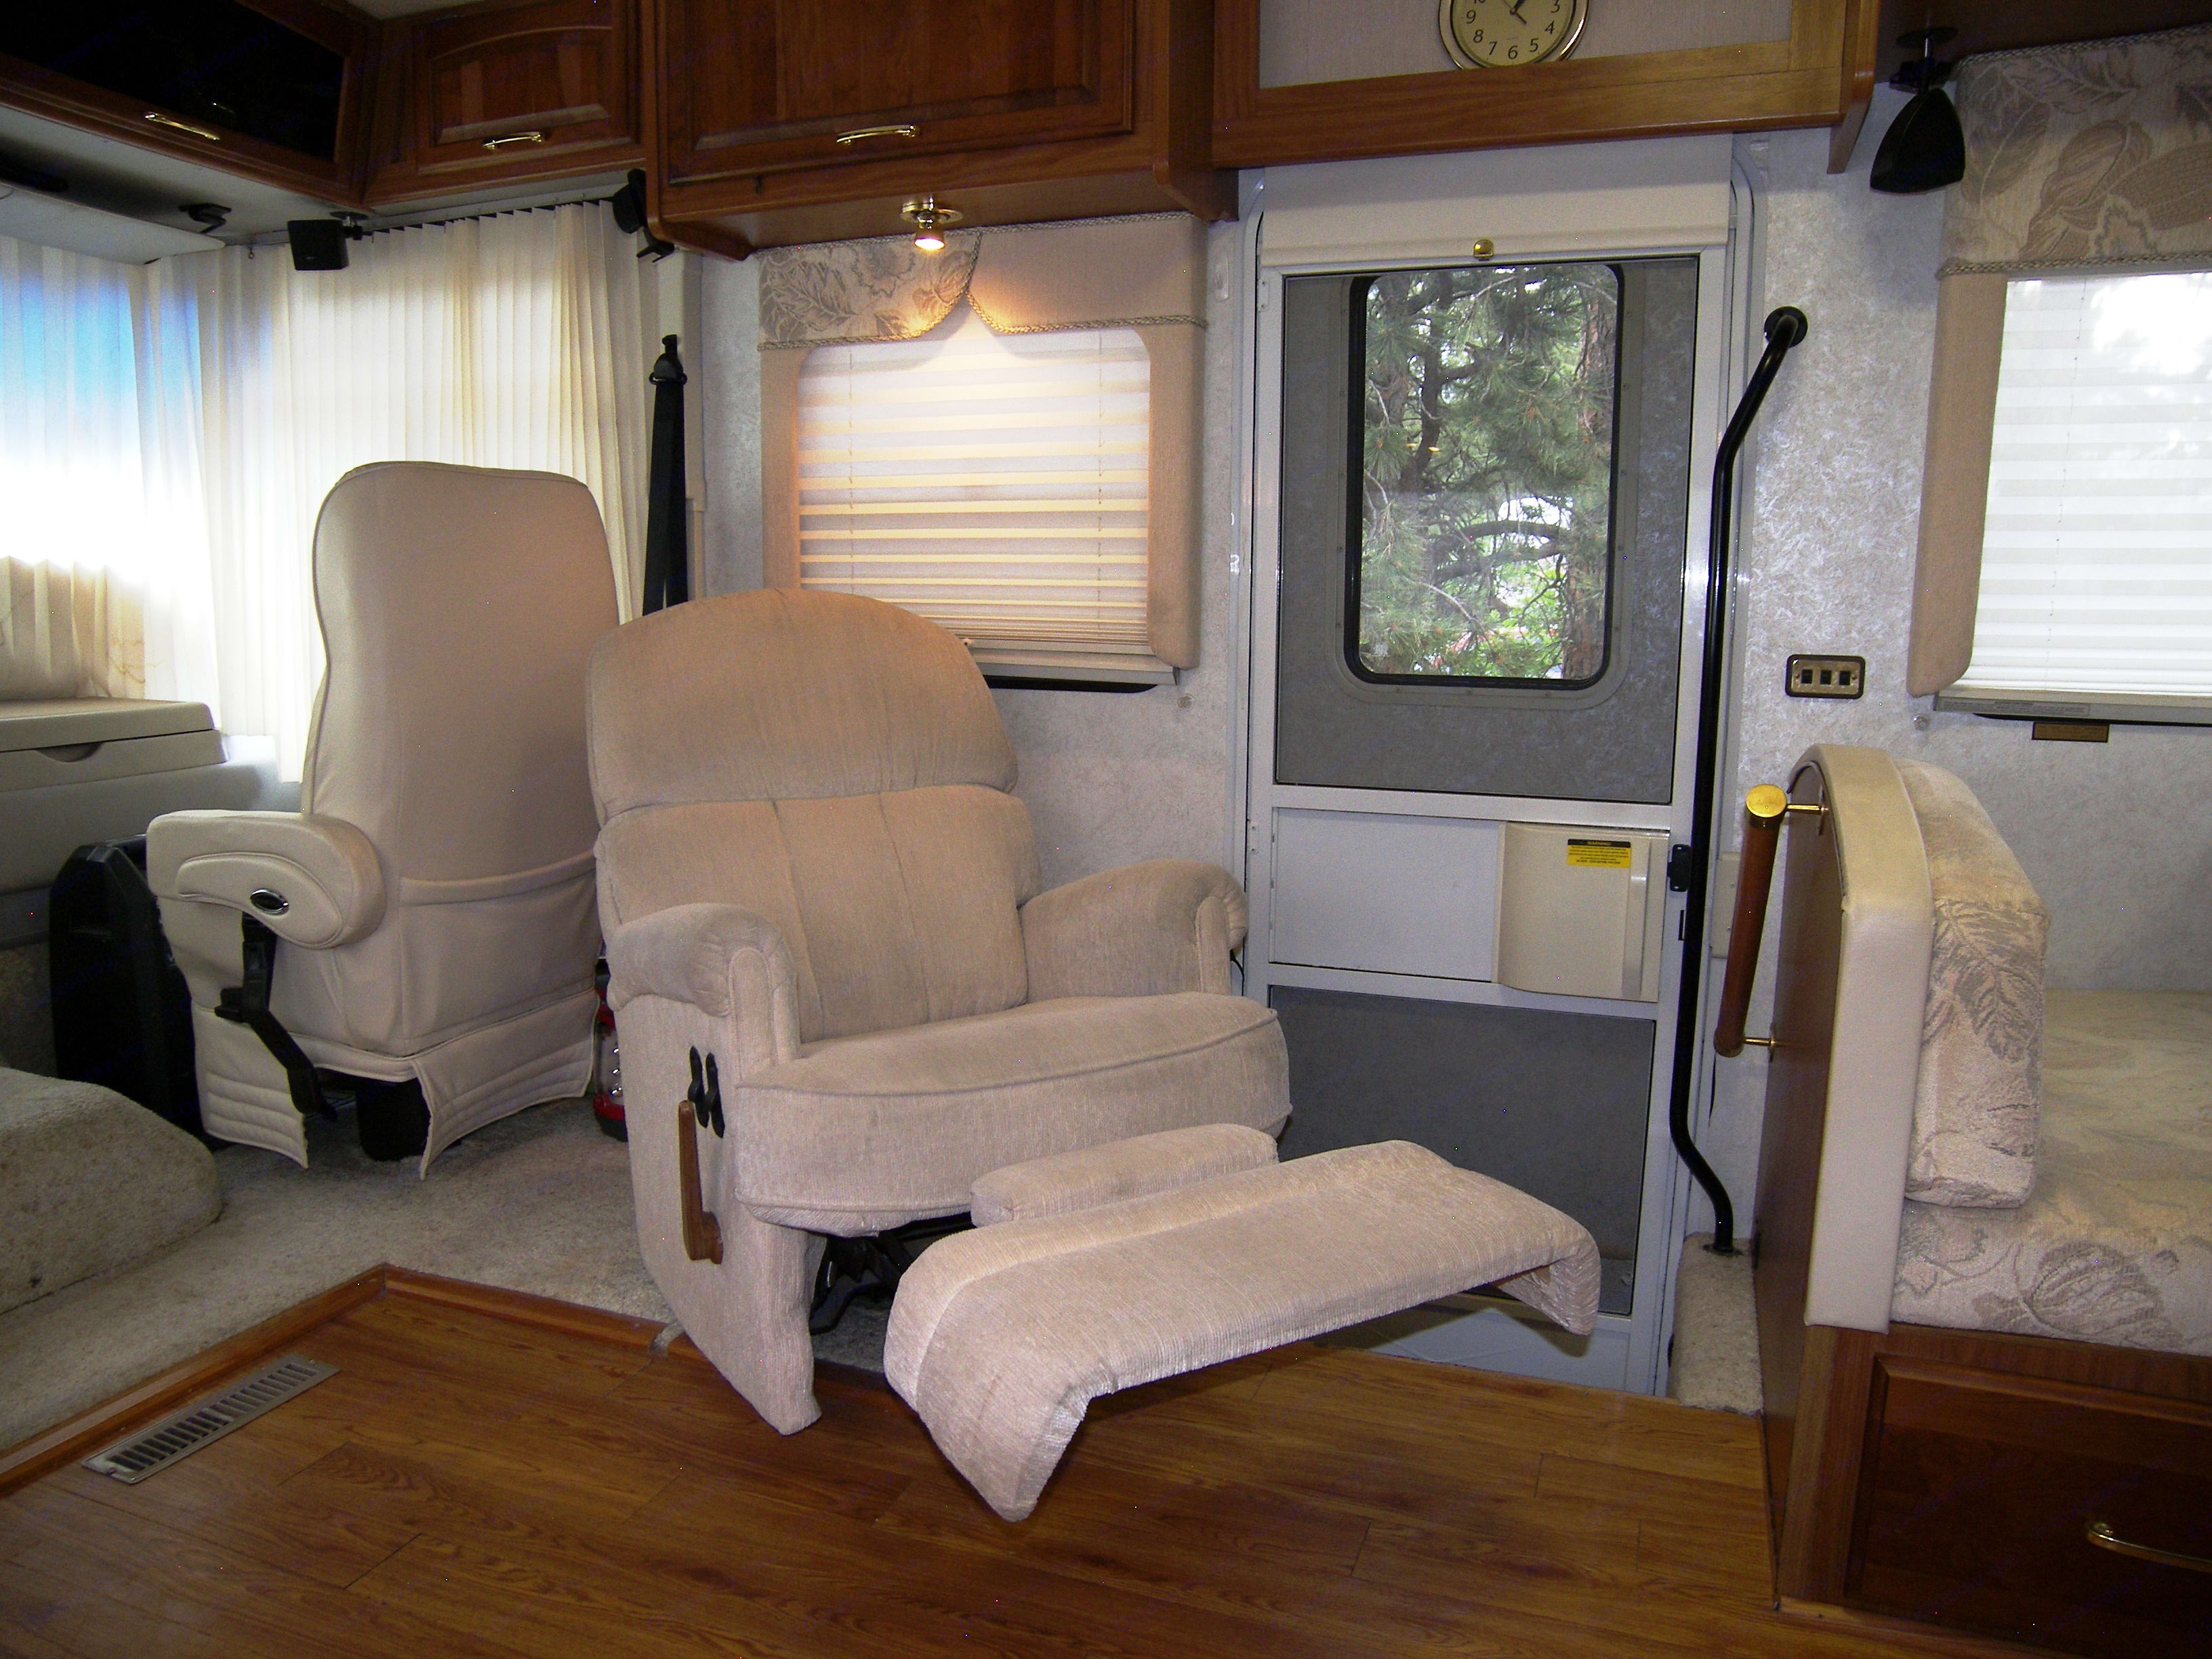 Living Room has comfy recliner, perfect for watching new Smart TV and DVD after a long day of playing.. Itasca Sunflyer 2000